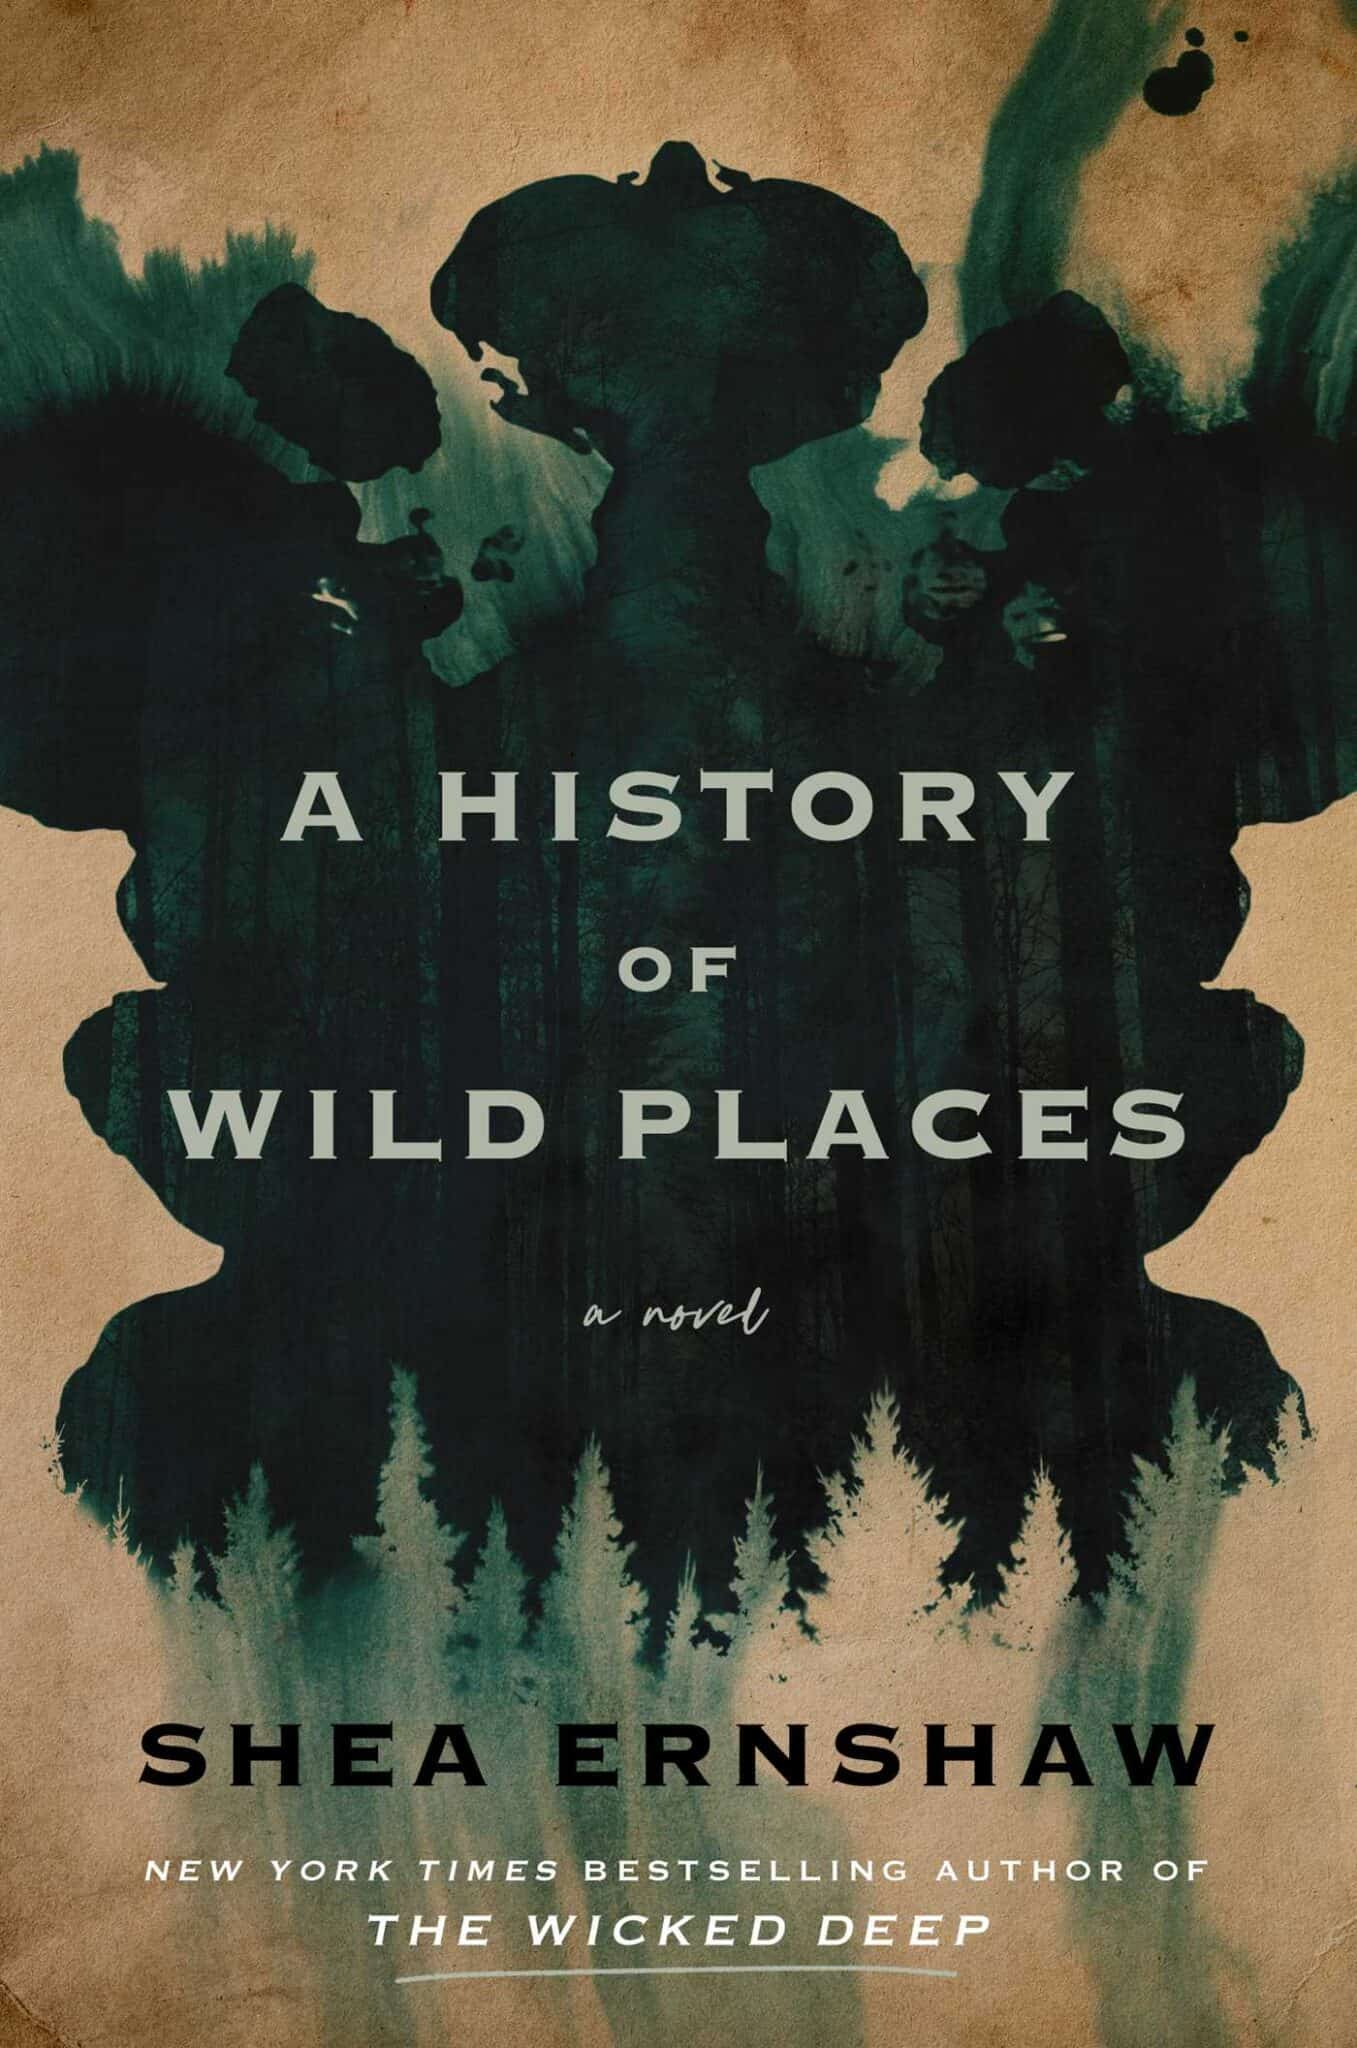 a history of wild places book cover